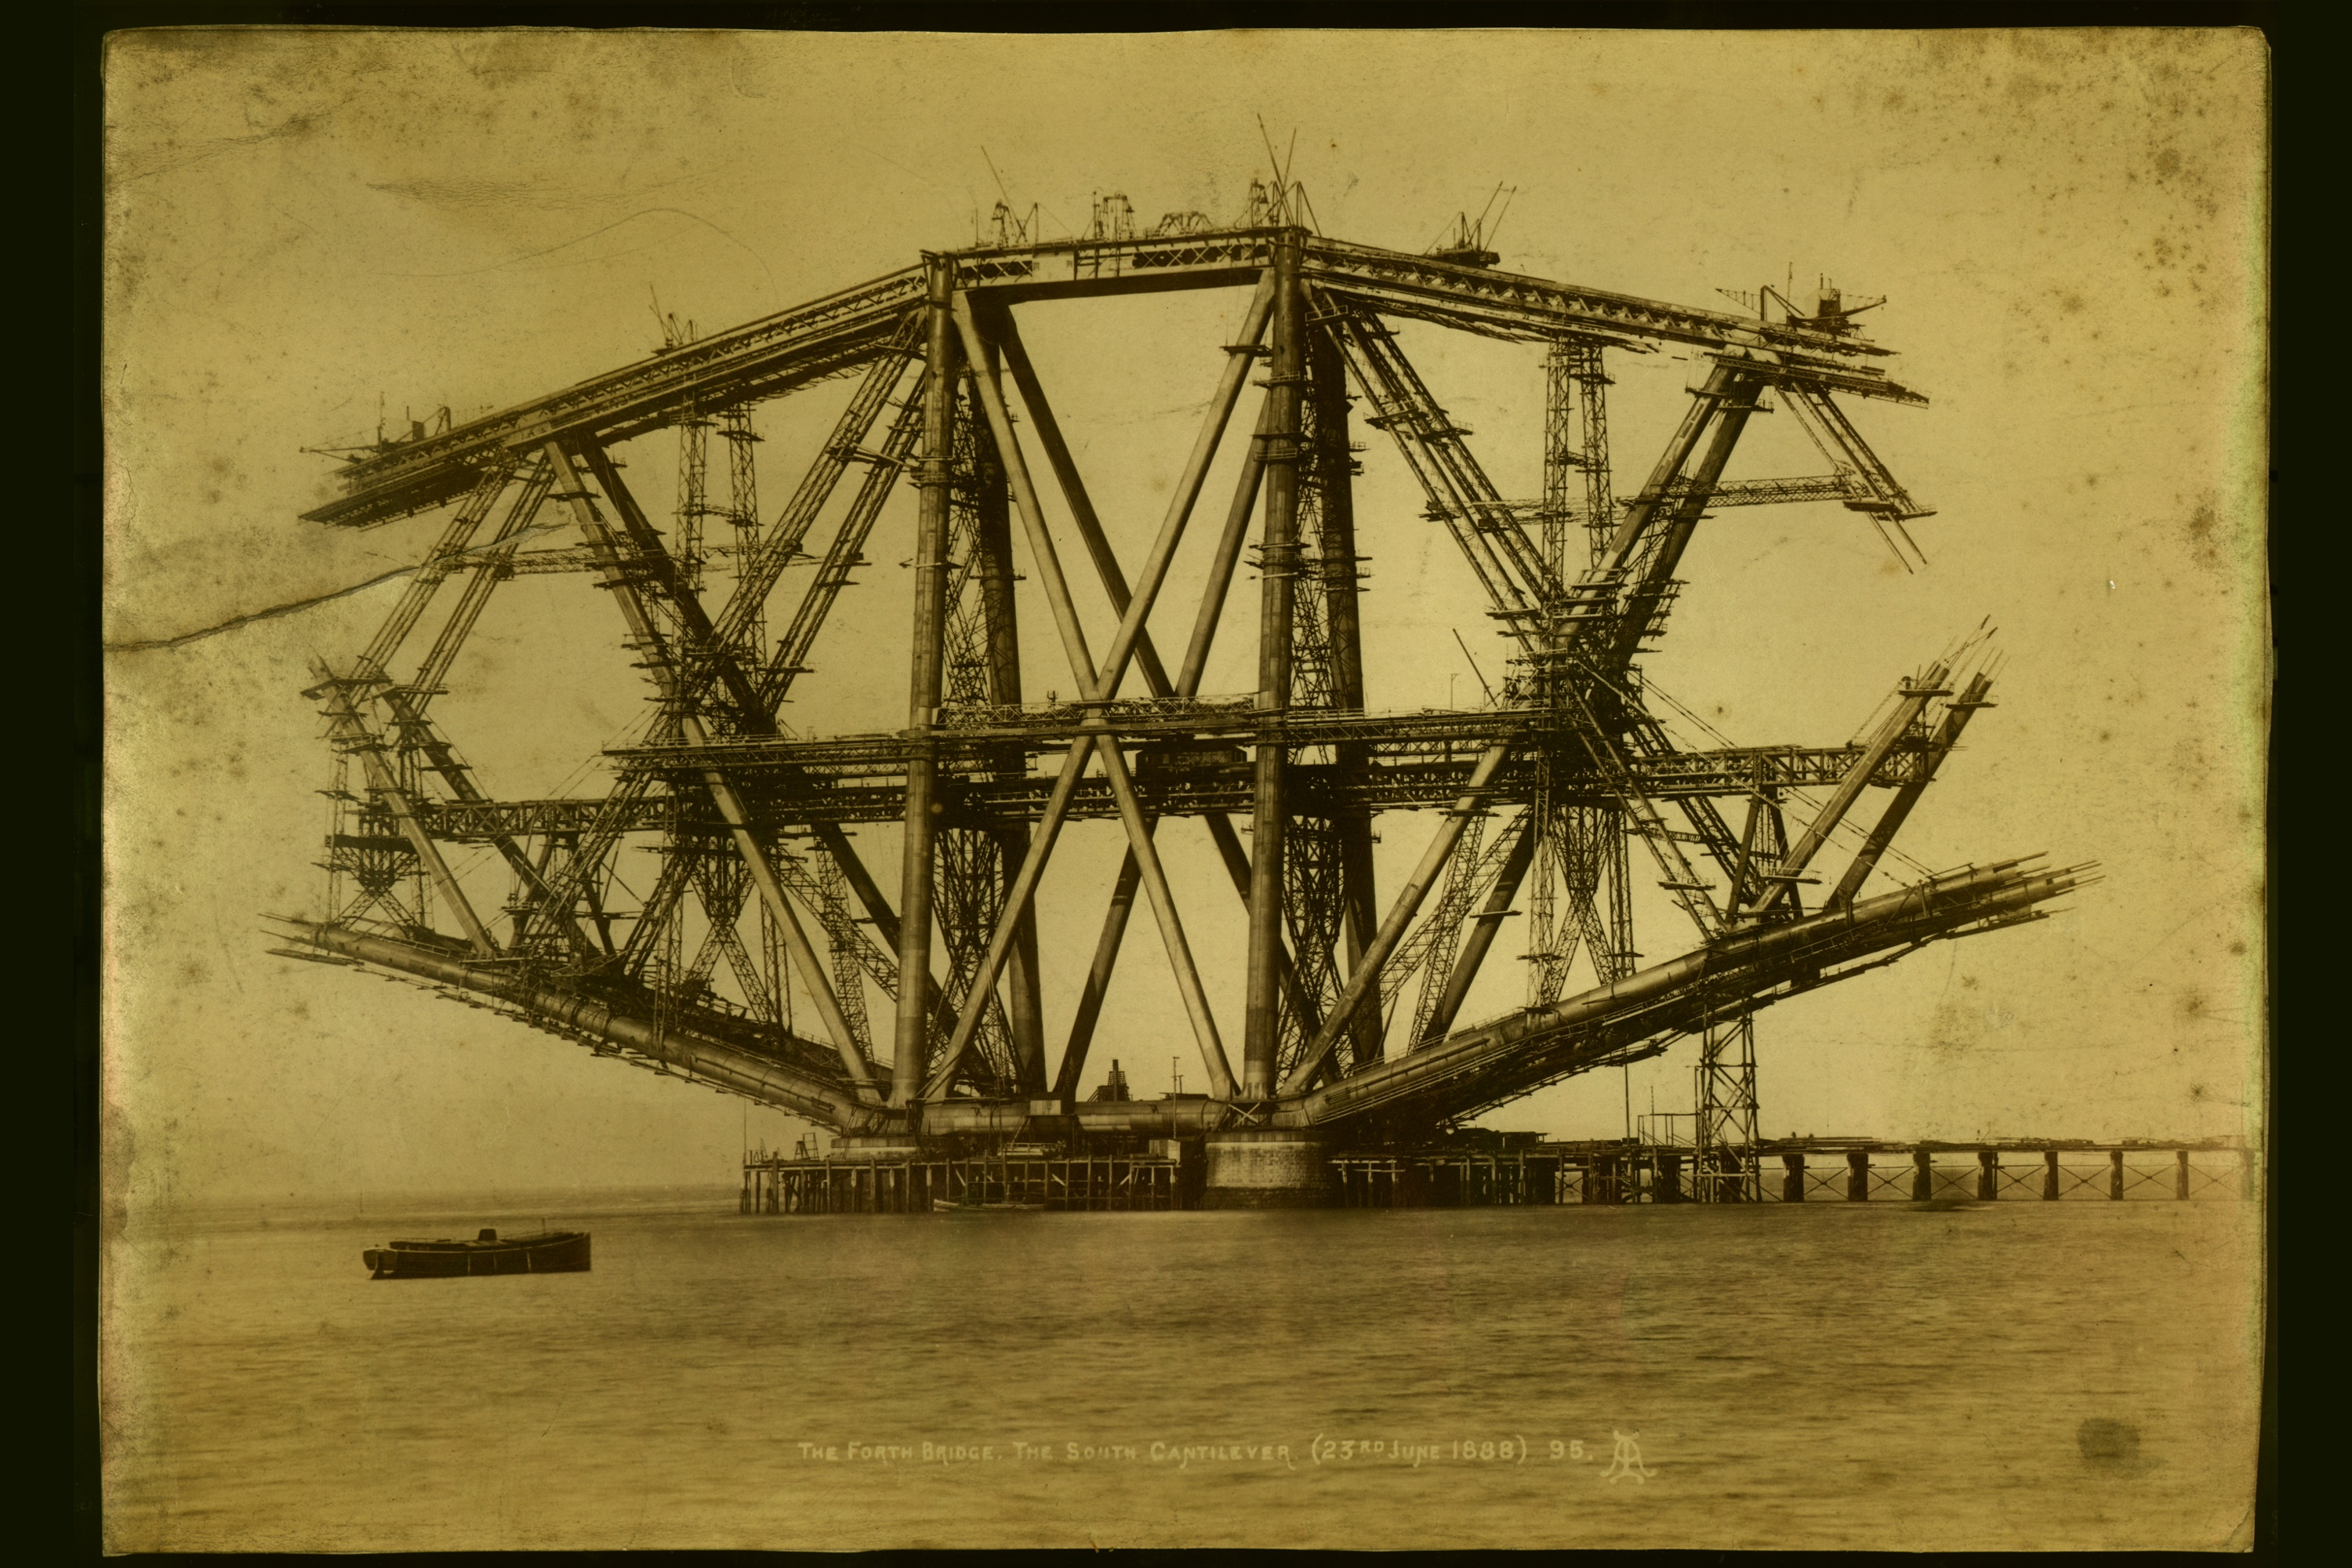 The Forth Railway Bridge under construction in 1887 (3000x2000)